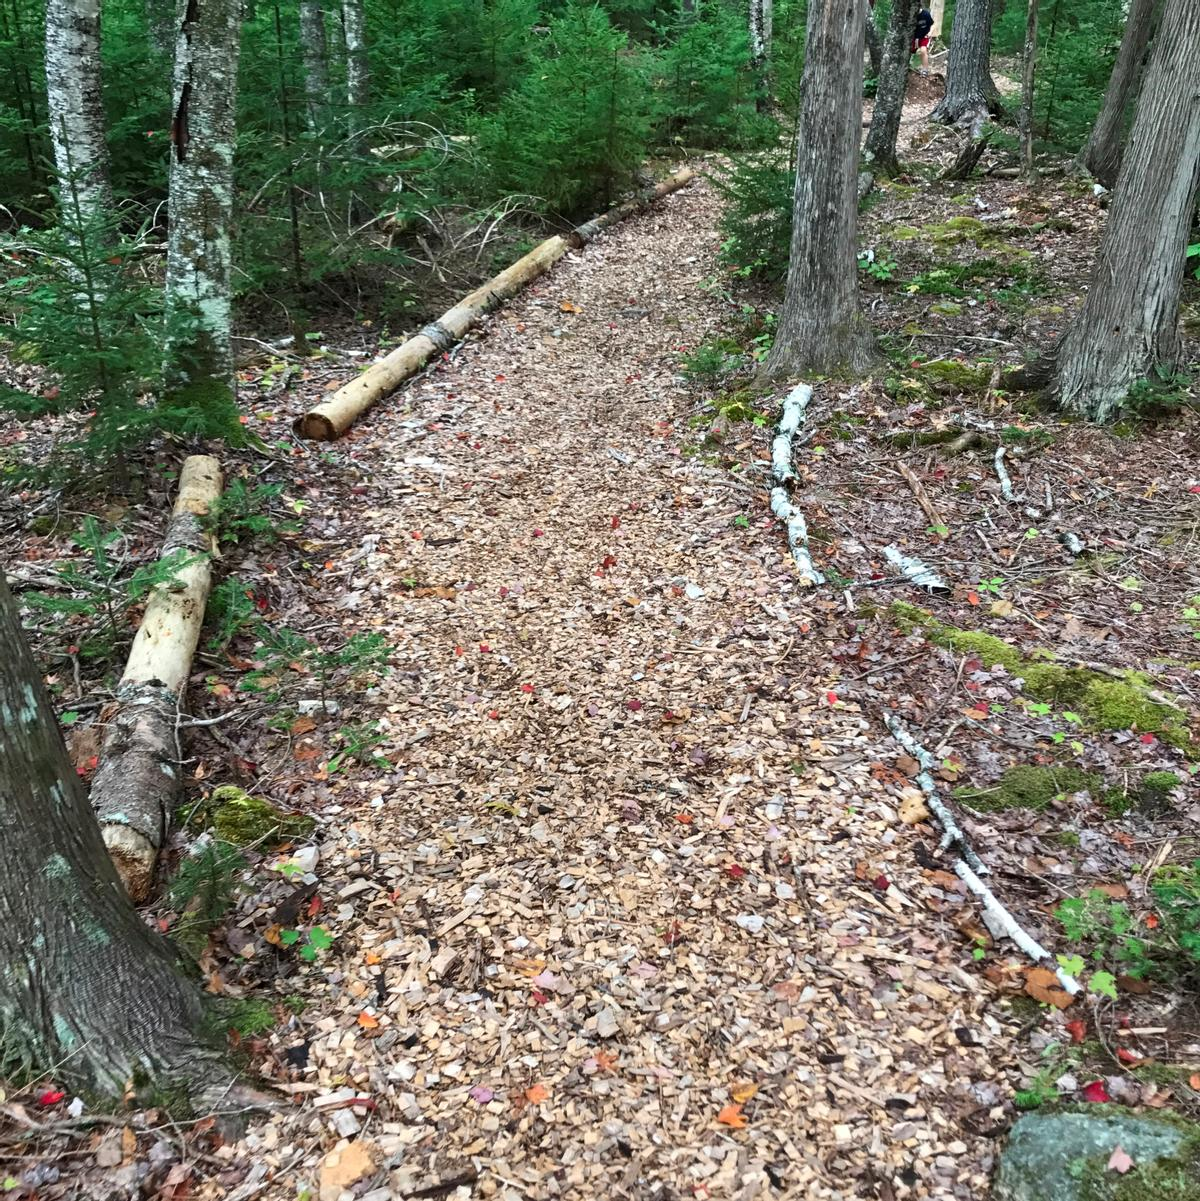 Wood chips and logs indicate where a wide pathway goes through the trees